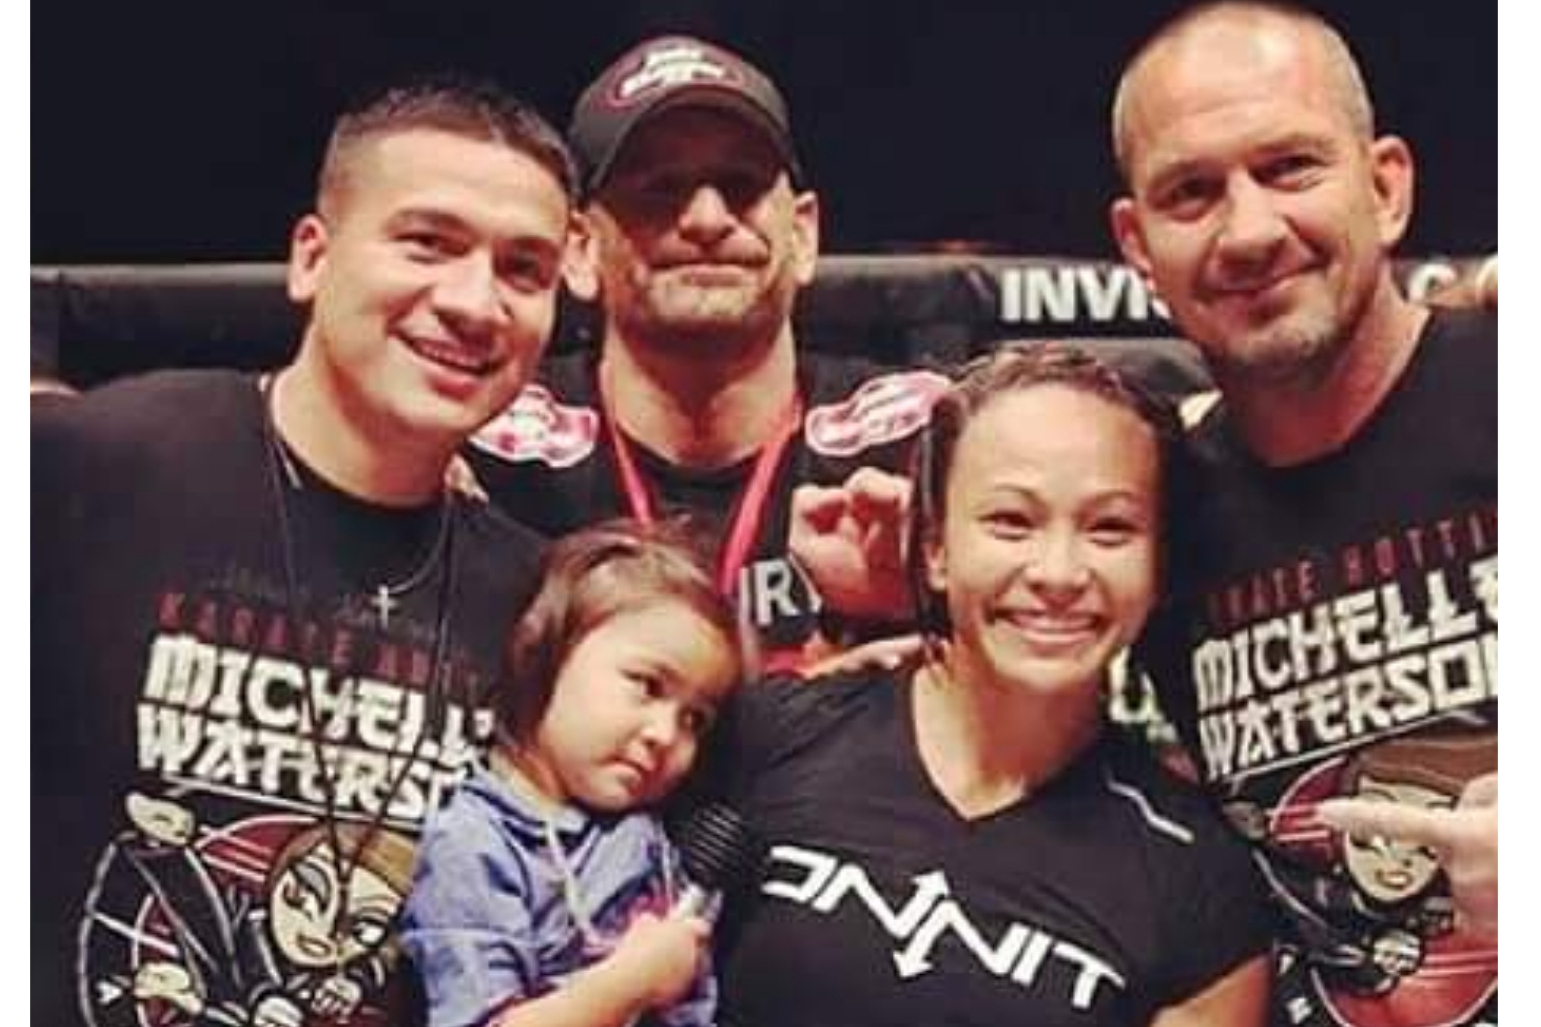 Fight Mom Michelle Waterson Fought For 10 Years To Be An Overnight Success Bleacher Report Latest News Videos And Highlights Singapore mixed martial arts mma strawweight michelle waterson has her sixyearold daughter watch her fights. fight mom michelle waterson fought for